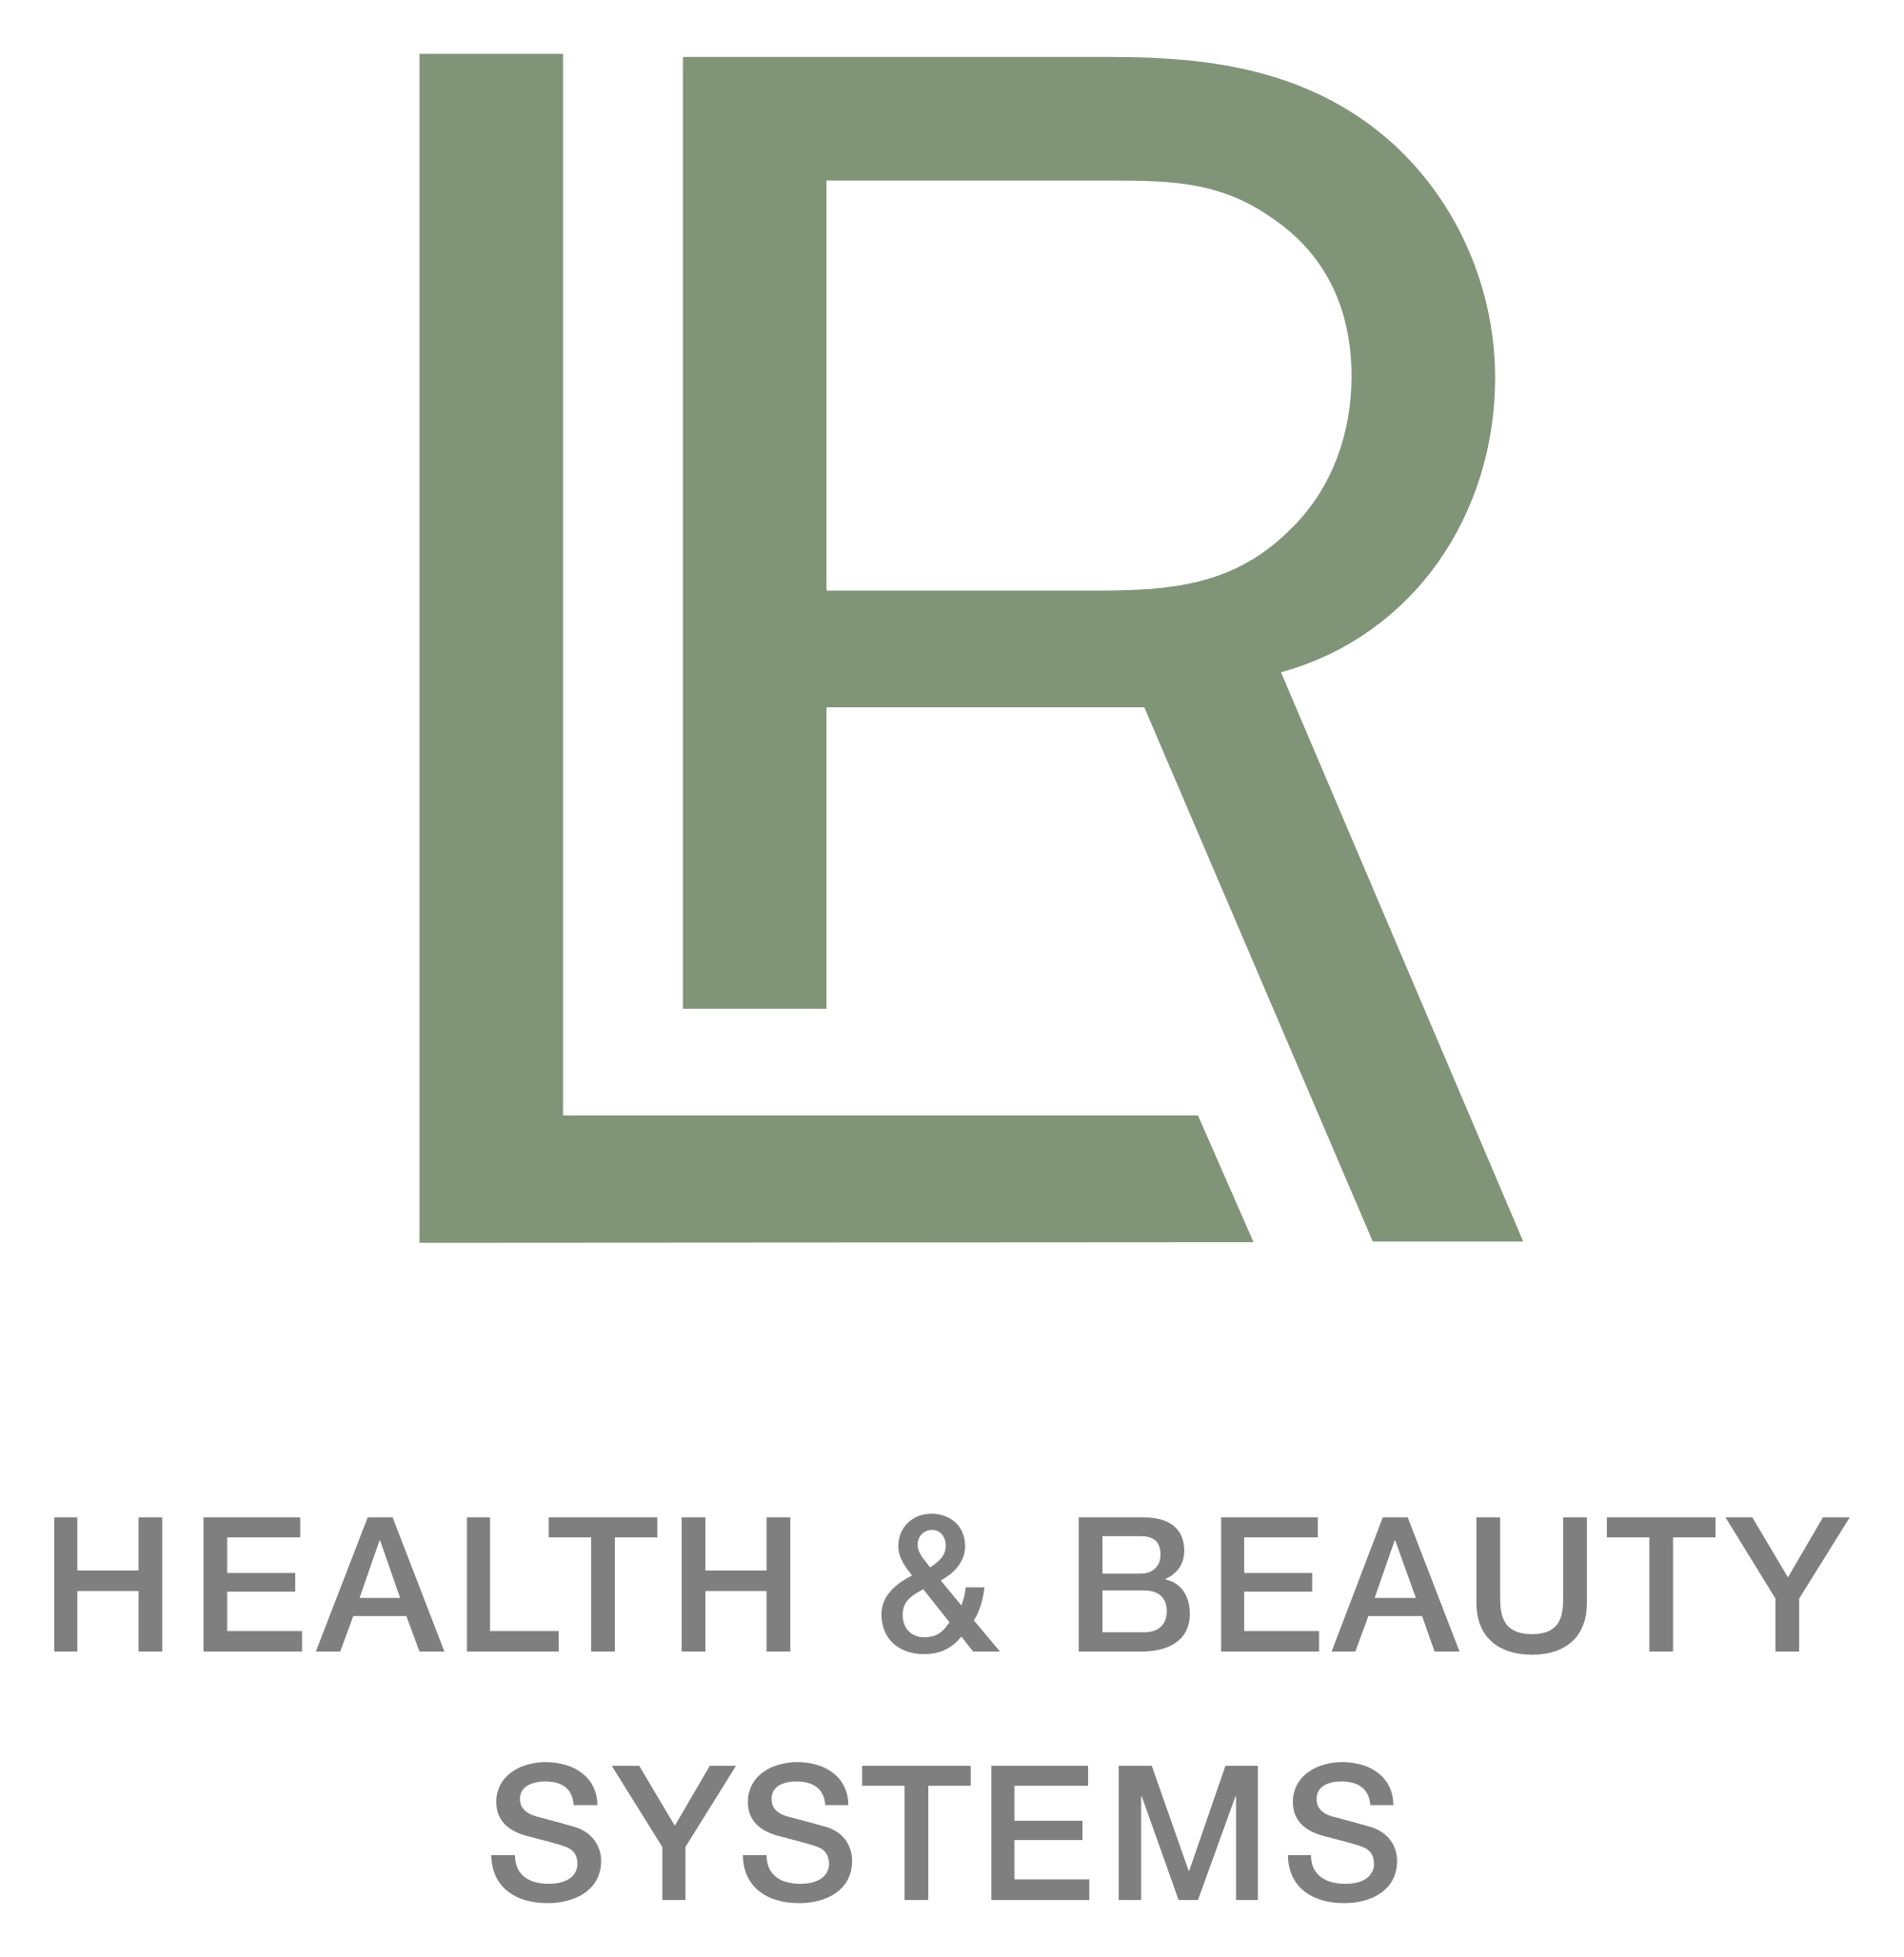 Health and beauty png. File lr systems logo